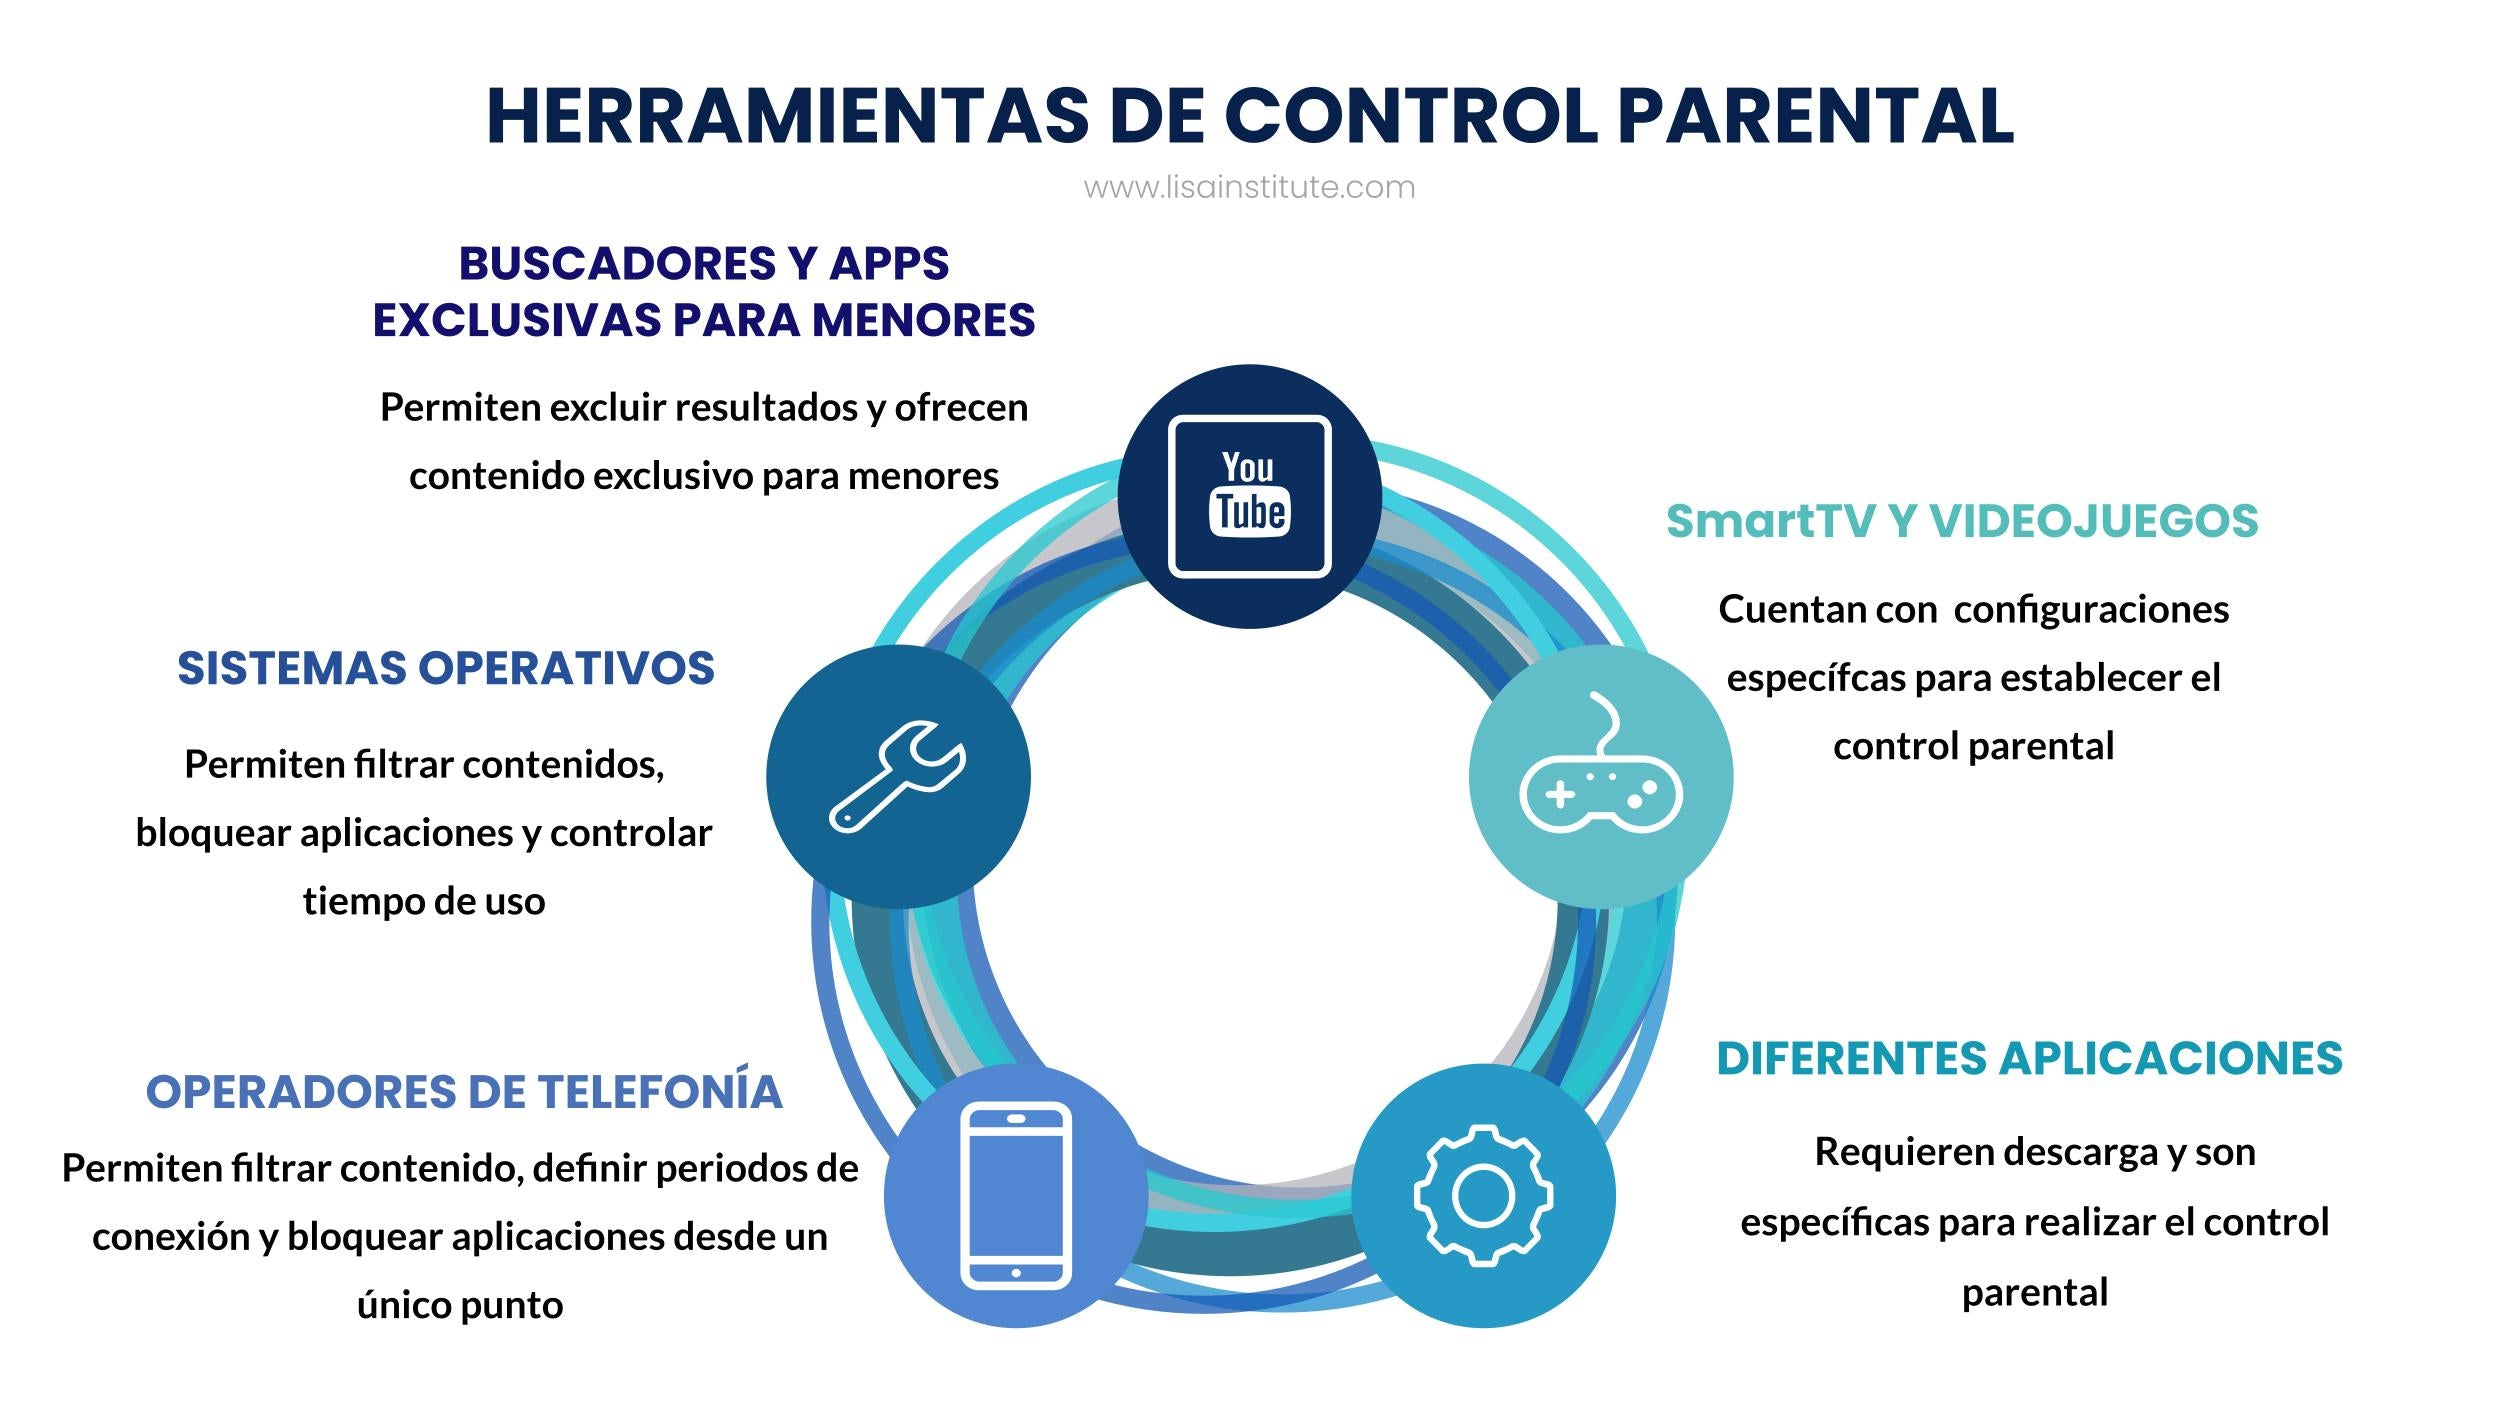 Herramientas de control parental - LISA Institute